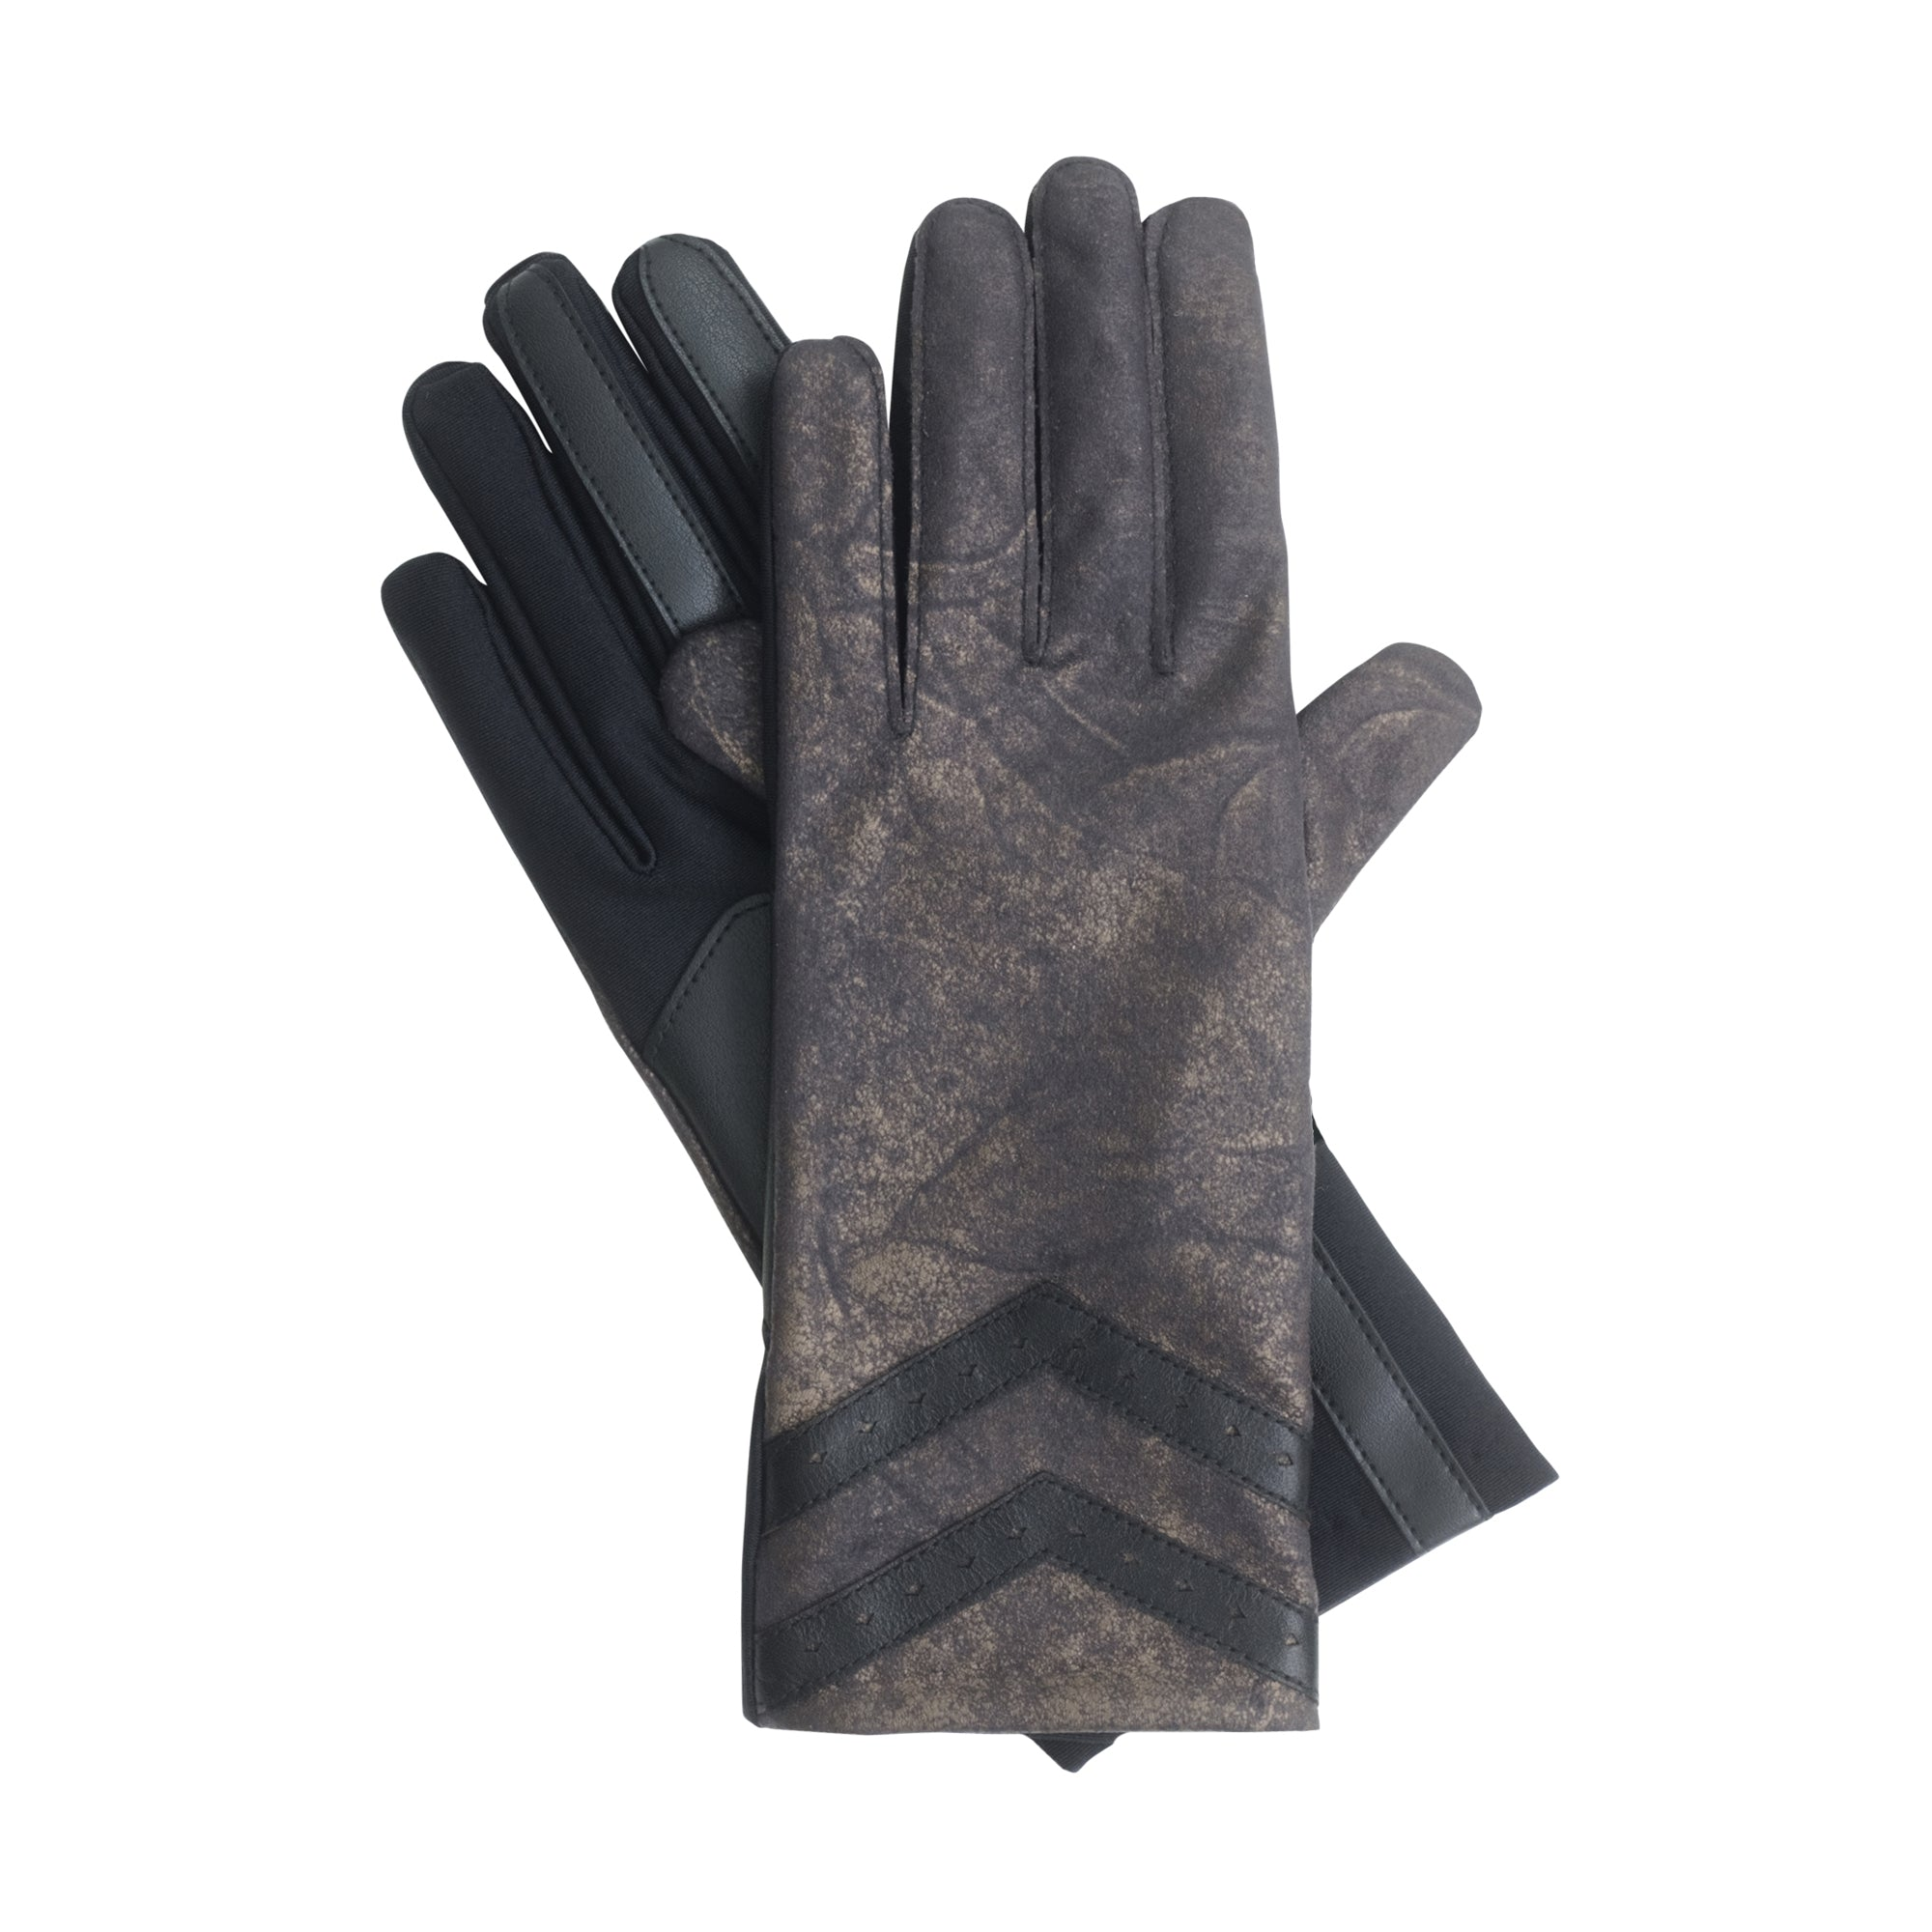 Isotoner Women's SmarTouch Stretch Faux Nappa Metallic Gloves